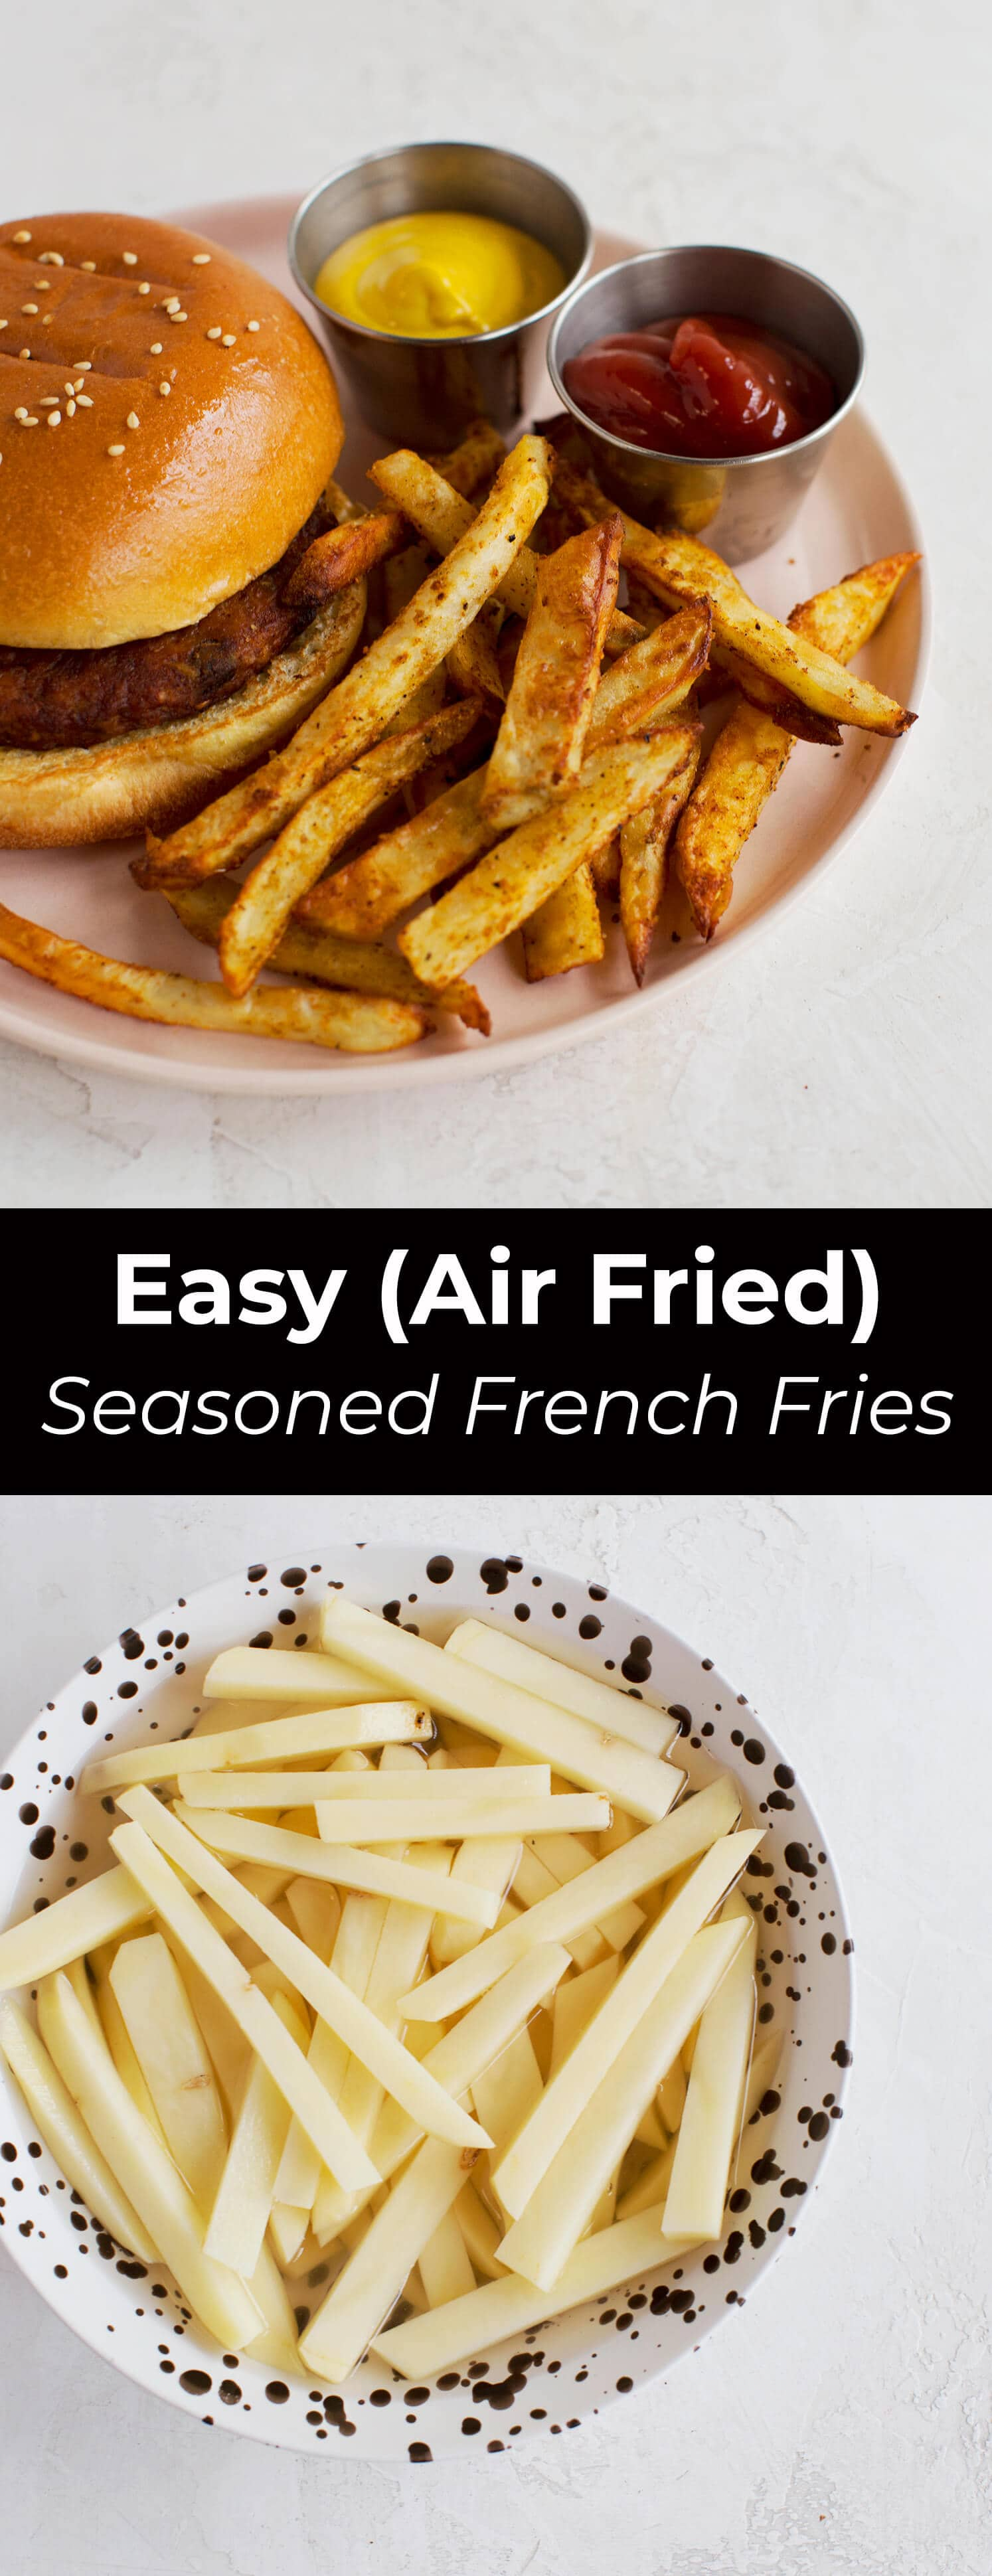 Easy Air Fried Seasoned French Fries A Beautiful Mess